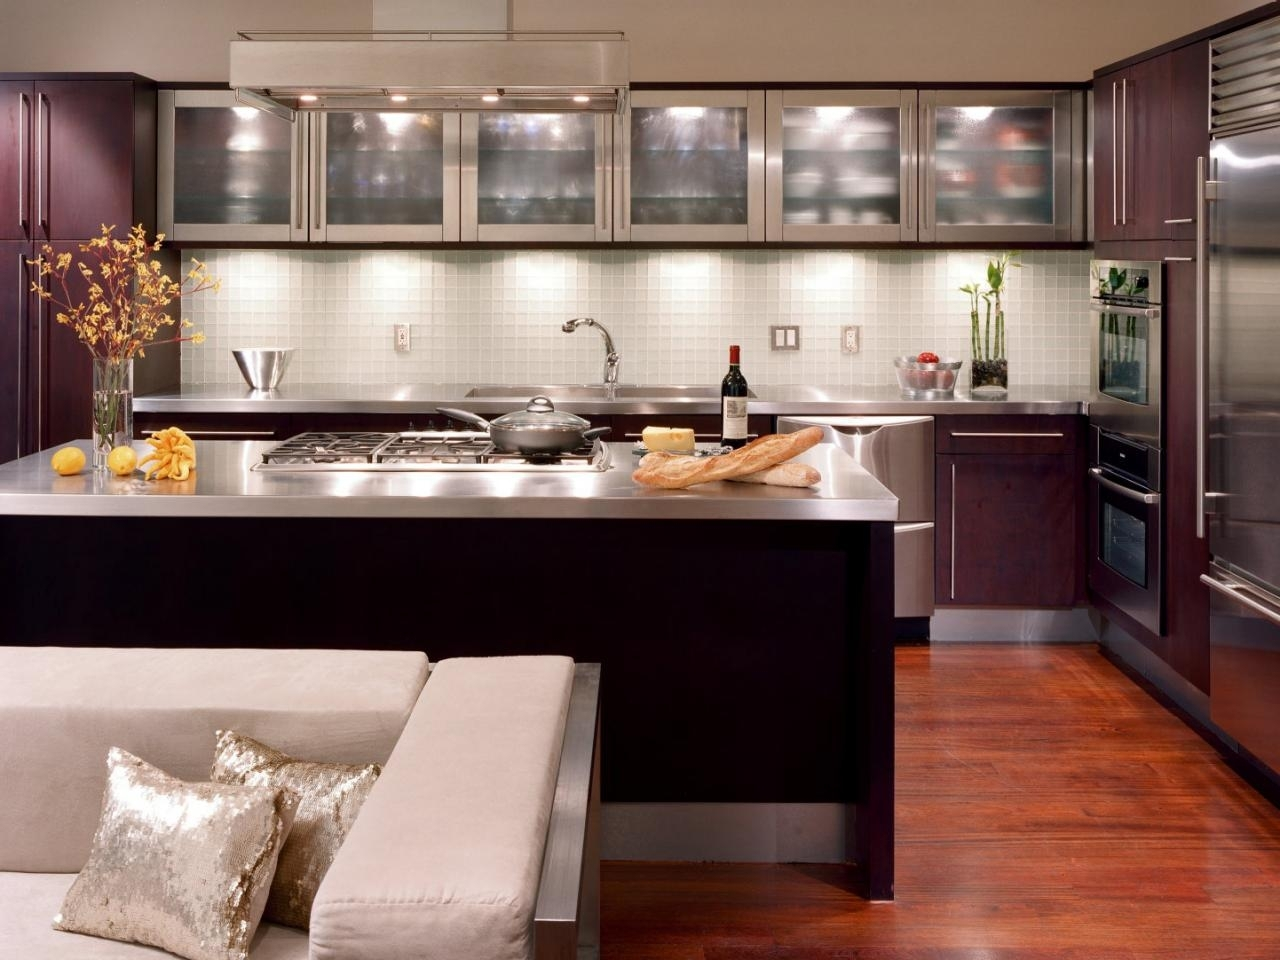 10 Most Recommended Small Eat In Kitchen Ideas %name